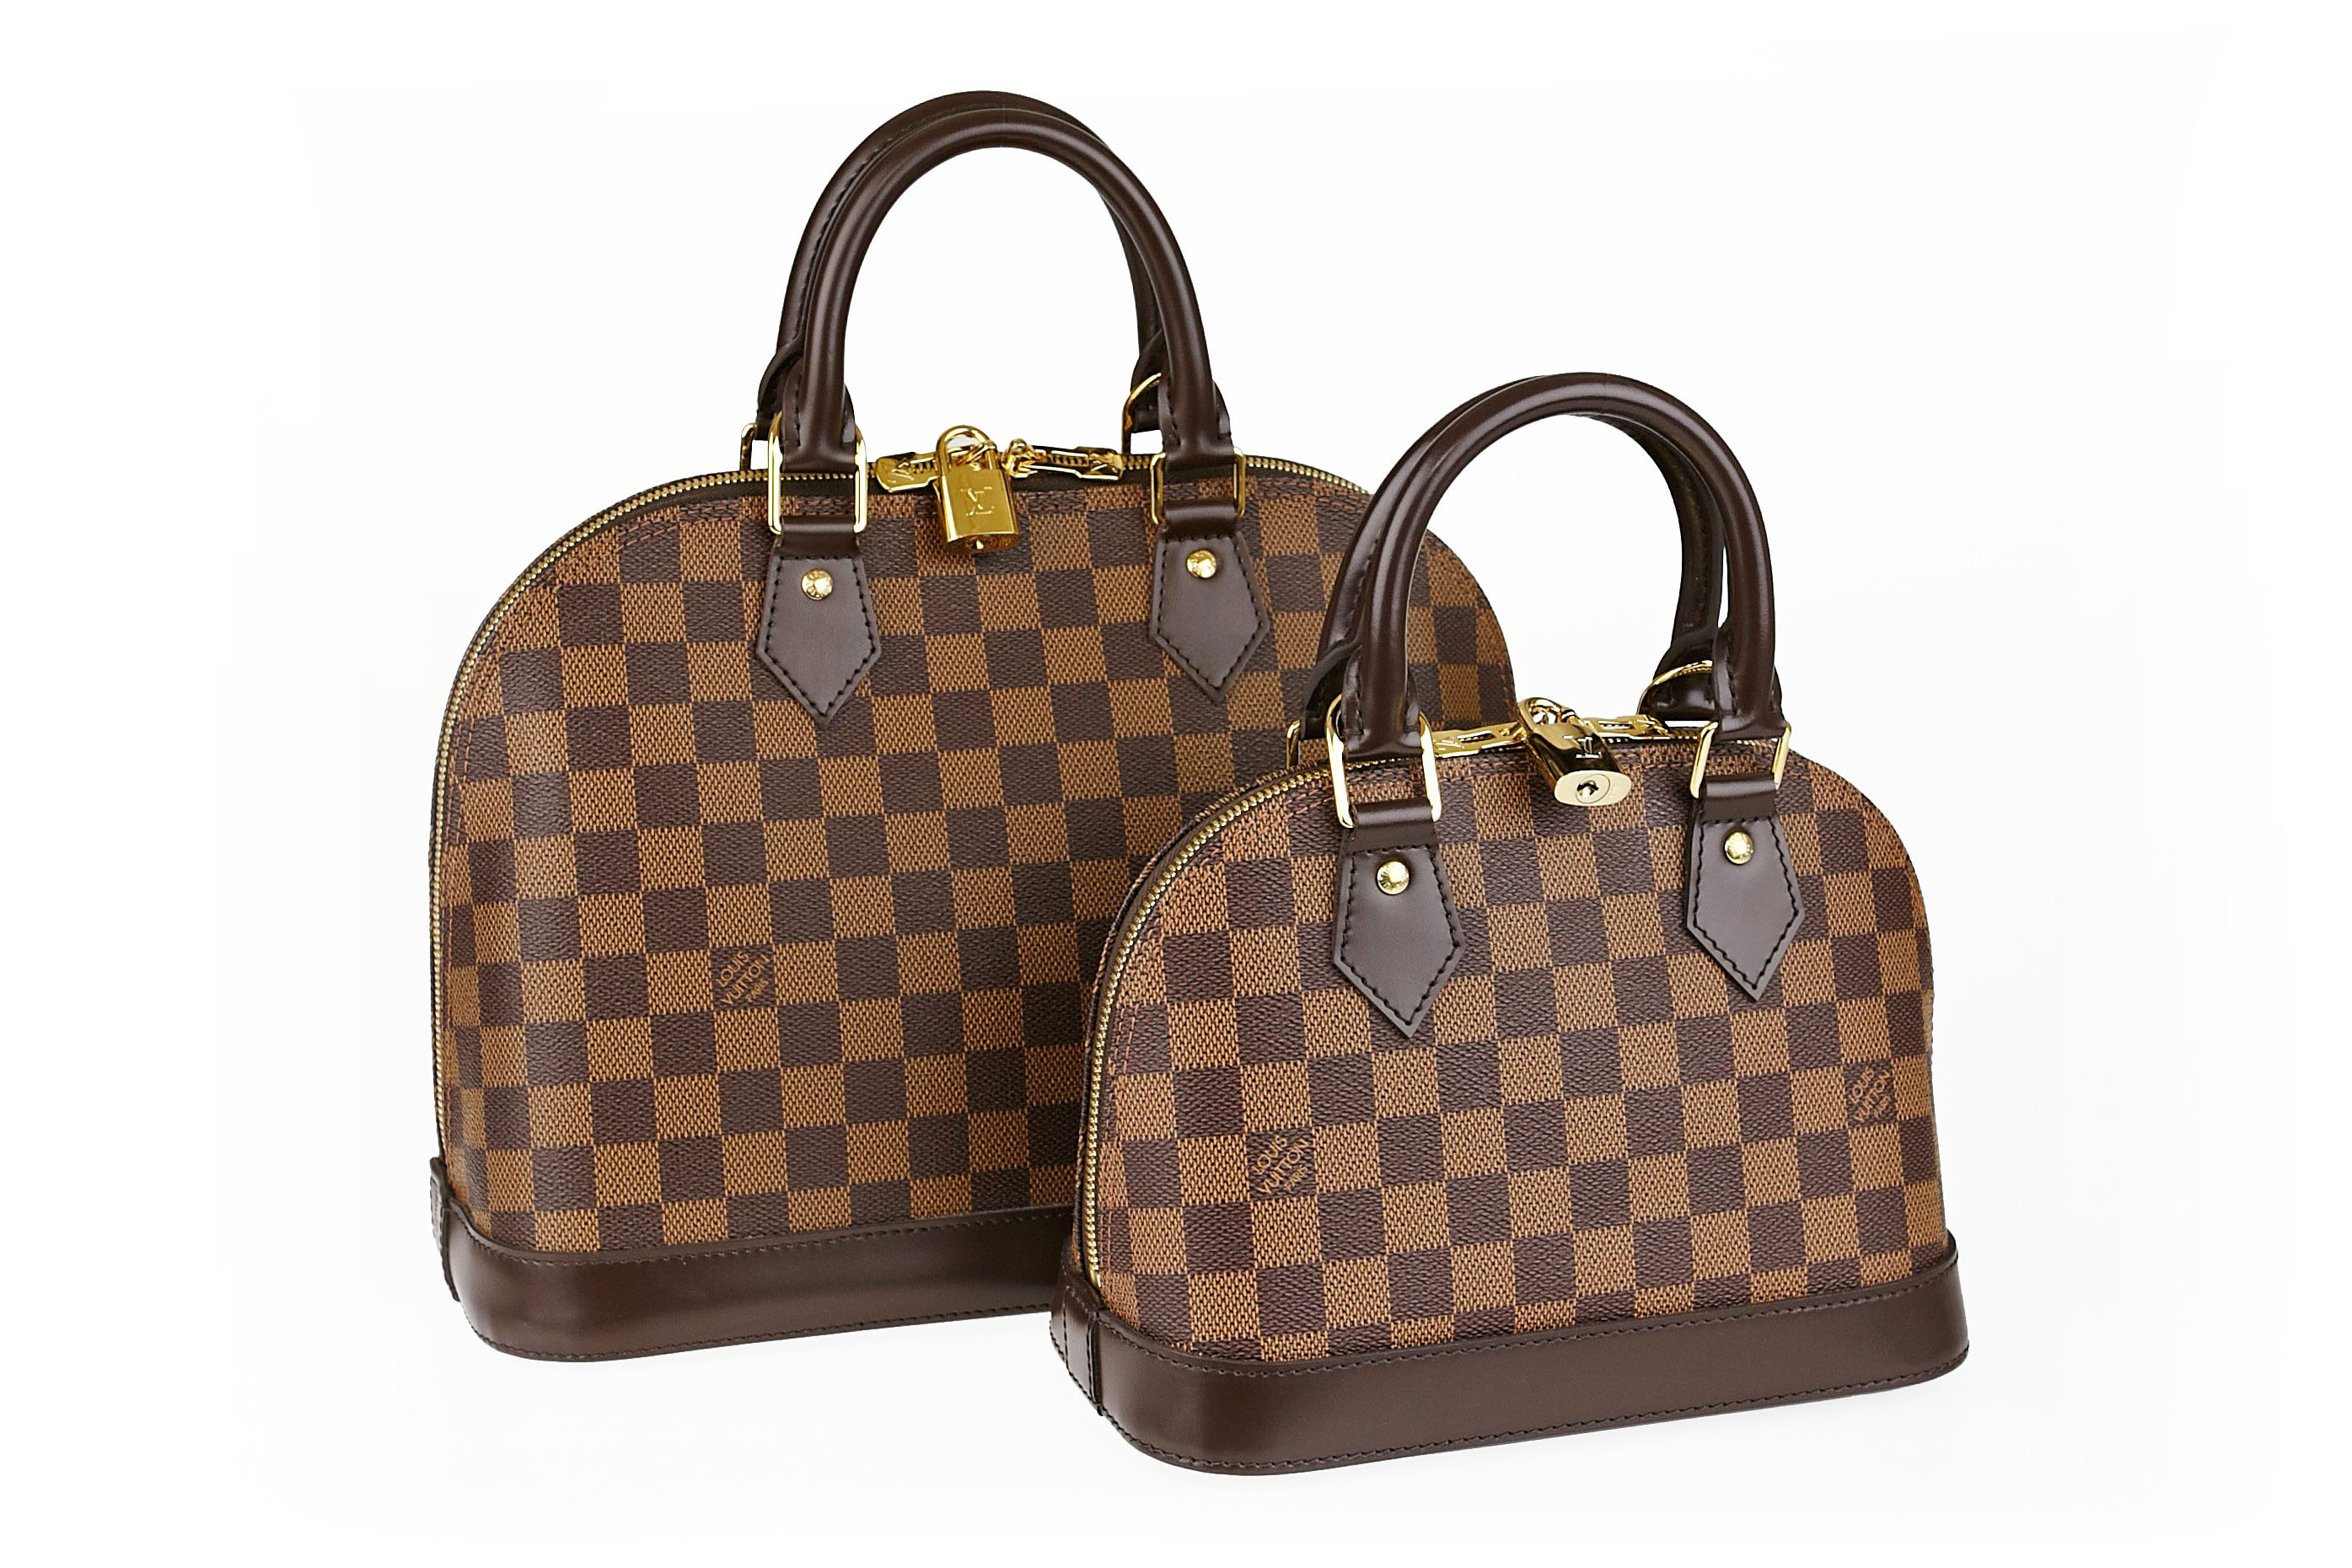 Louis Vuitton Damier Alma BB and PM Size Differences | YoogisCloset.com